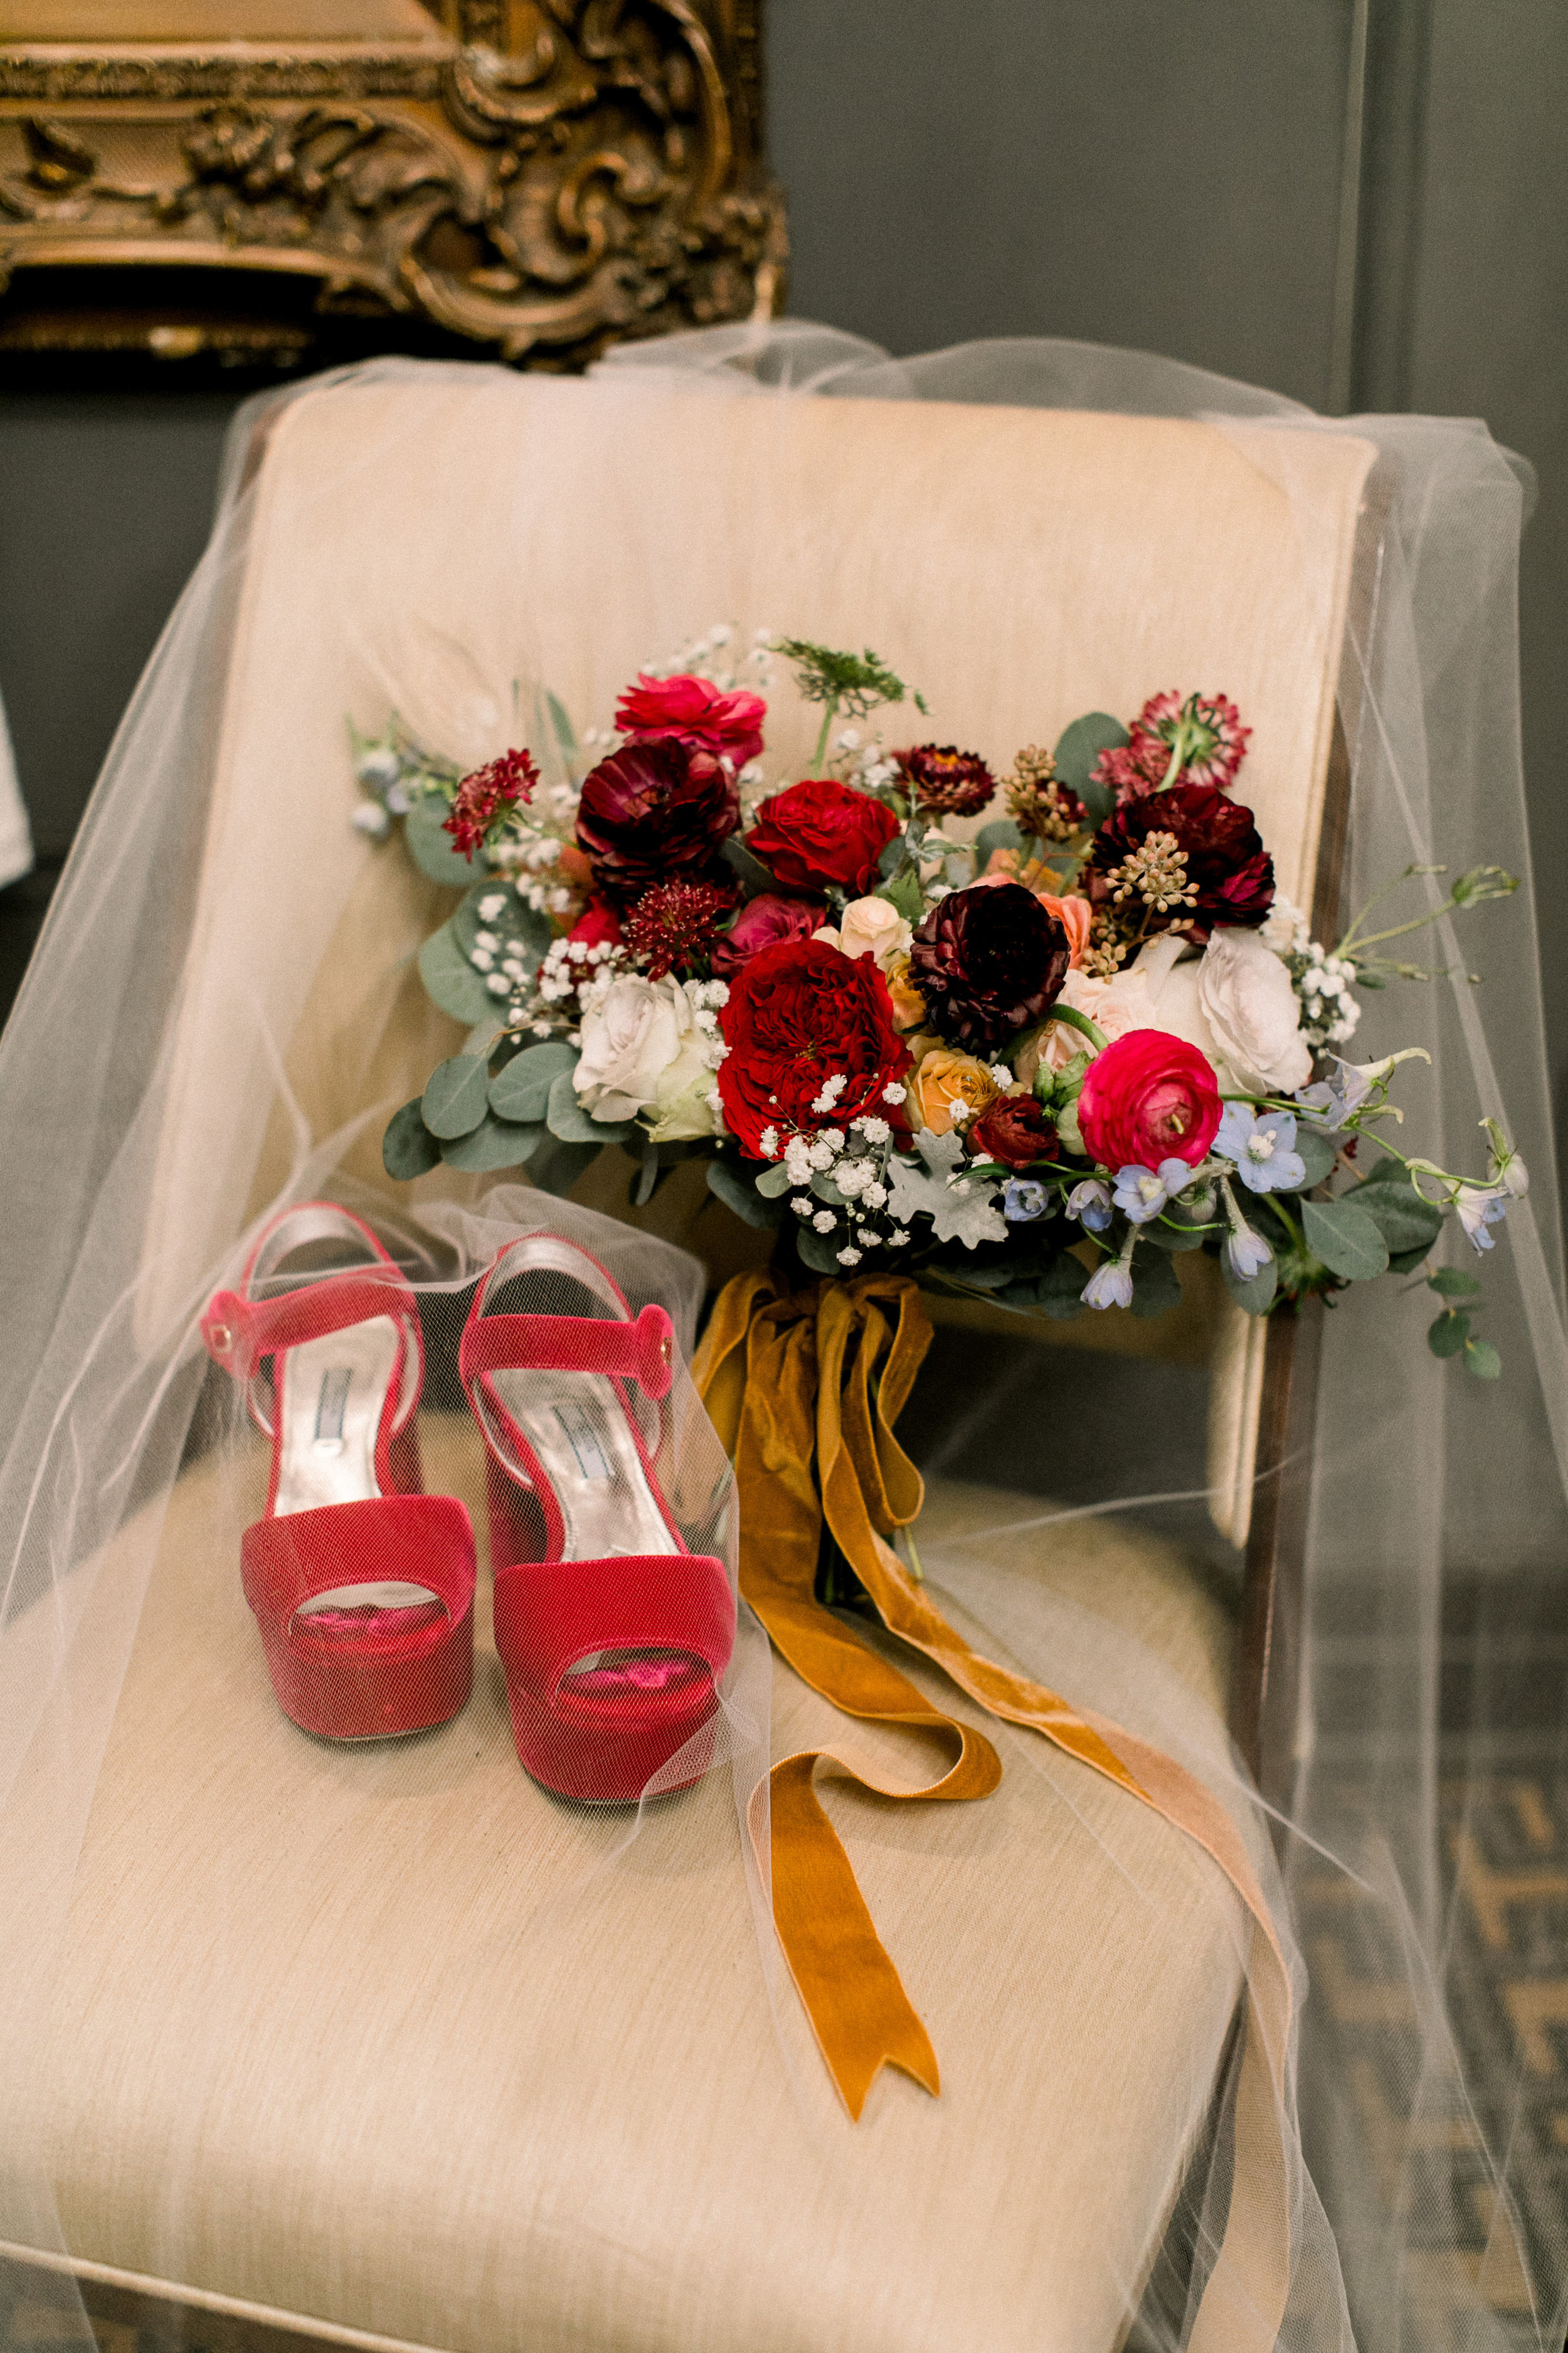 Stephanie's bouquet and accessories- Photo by Sposto Photo